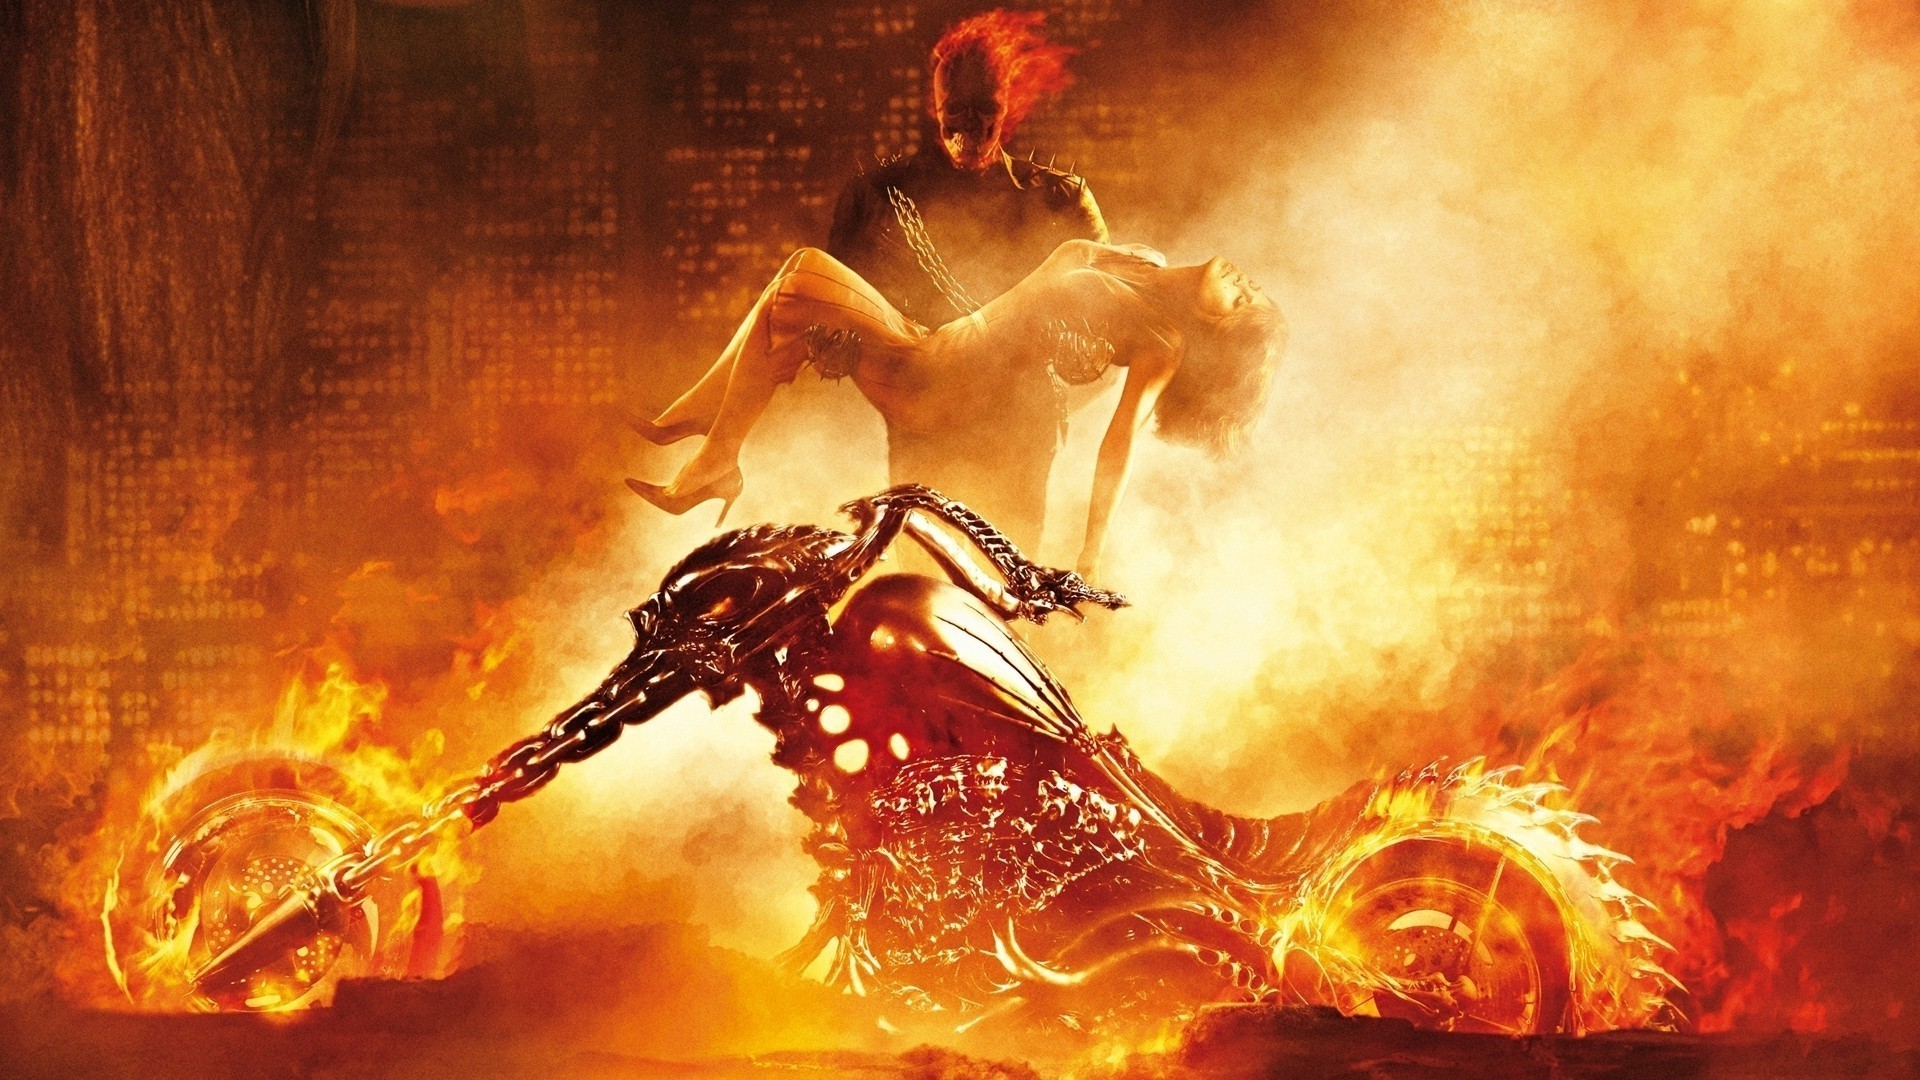 1920x1200 Ghost Rider HD Wallpaper 1920x1080 Ghost Rider HD Wallpaper 1920x1200